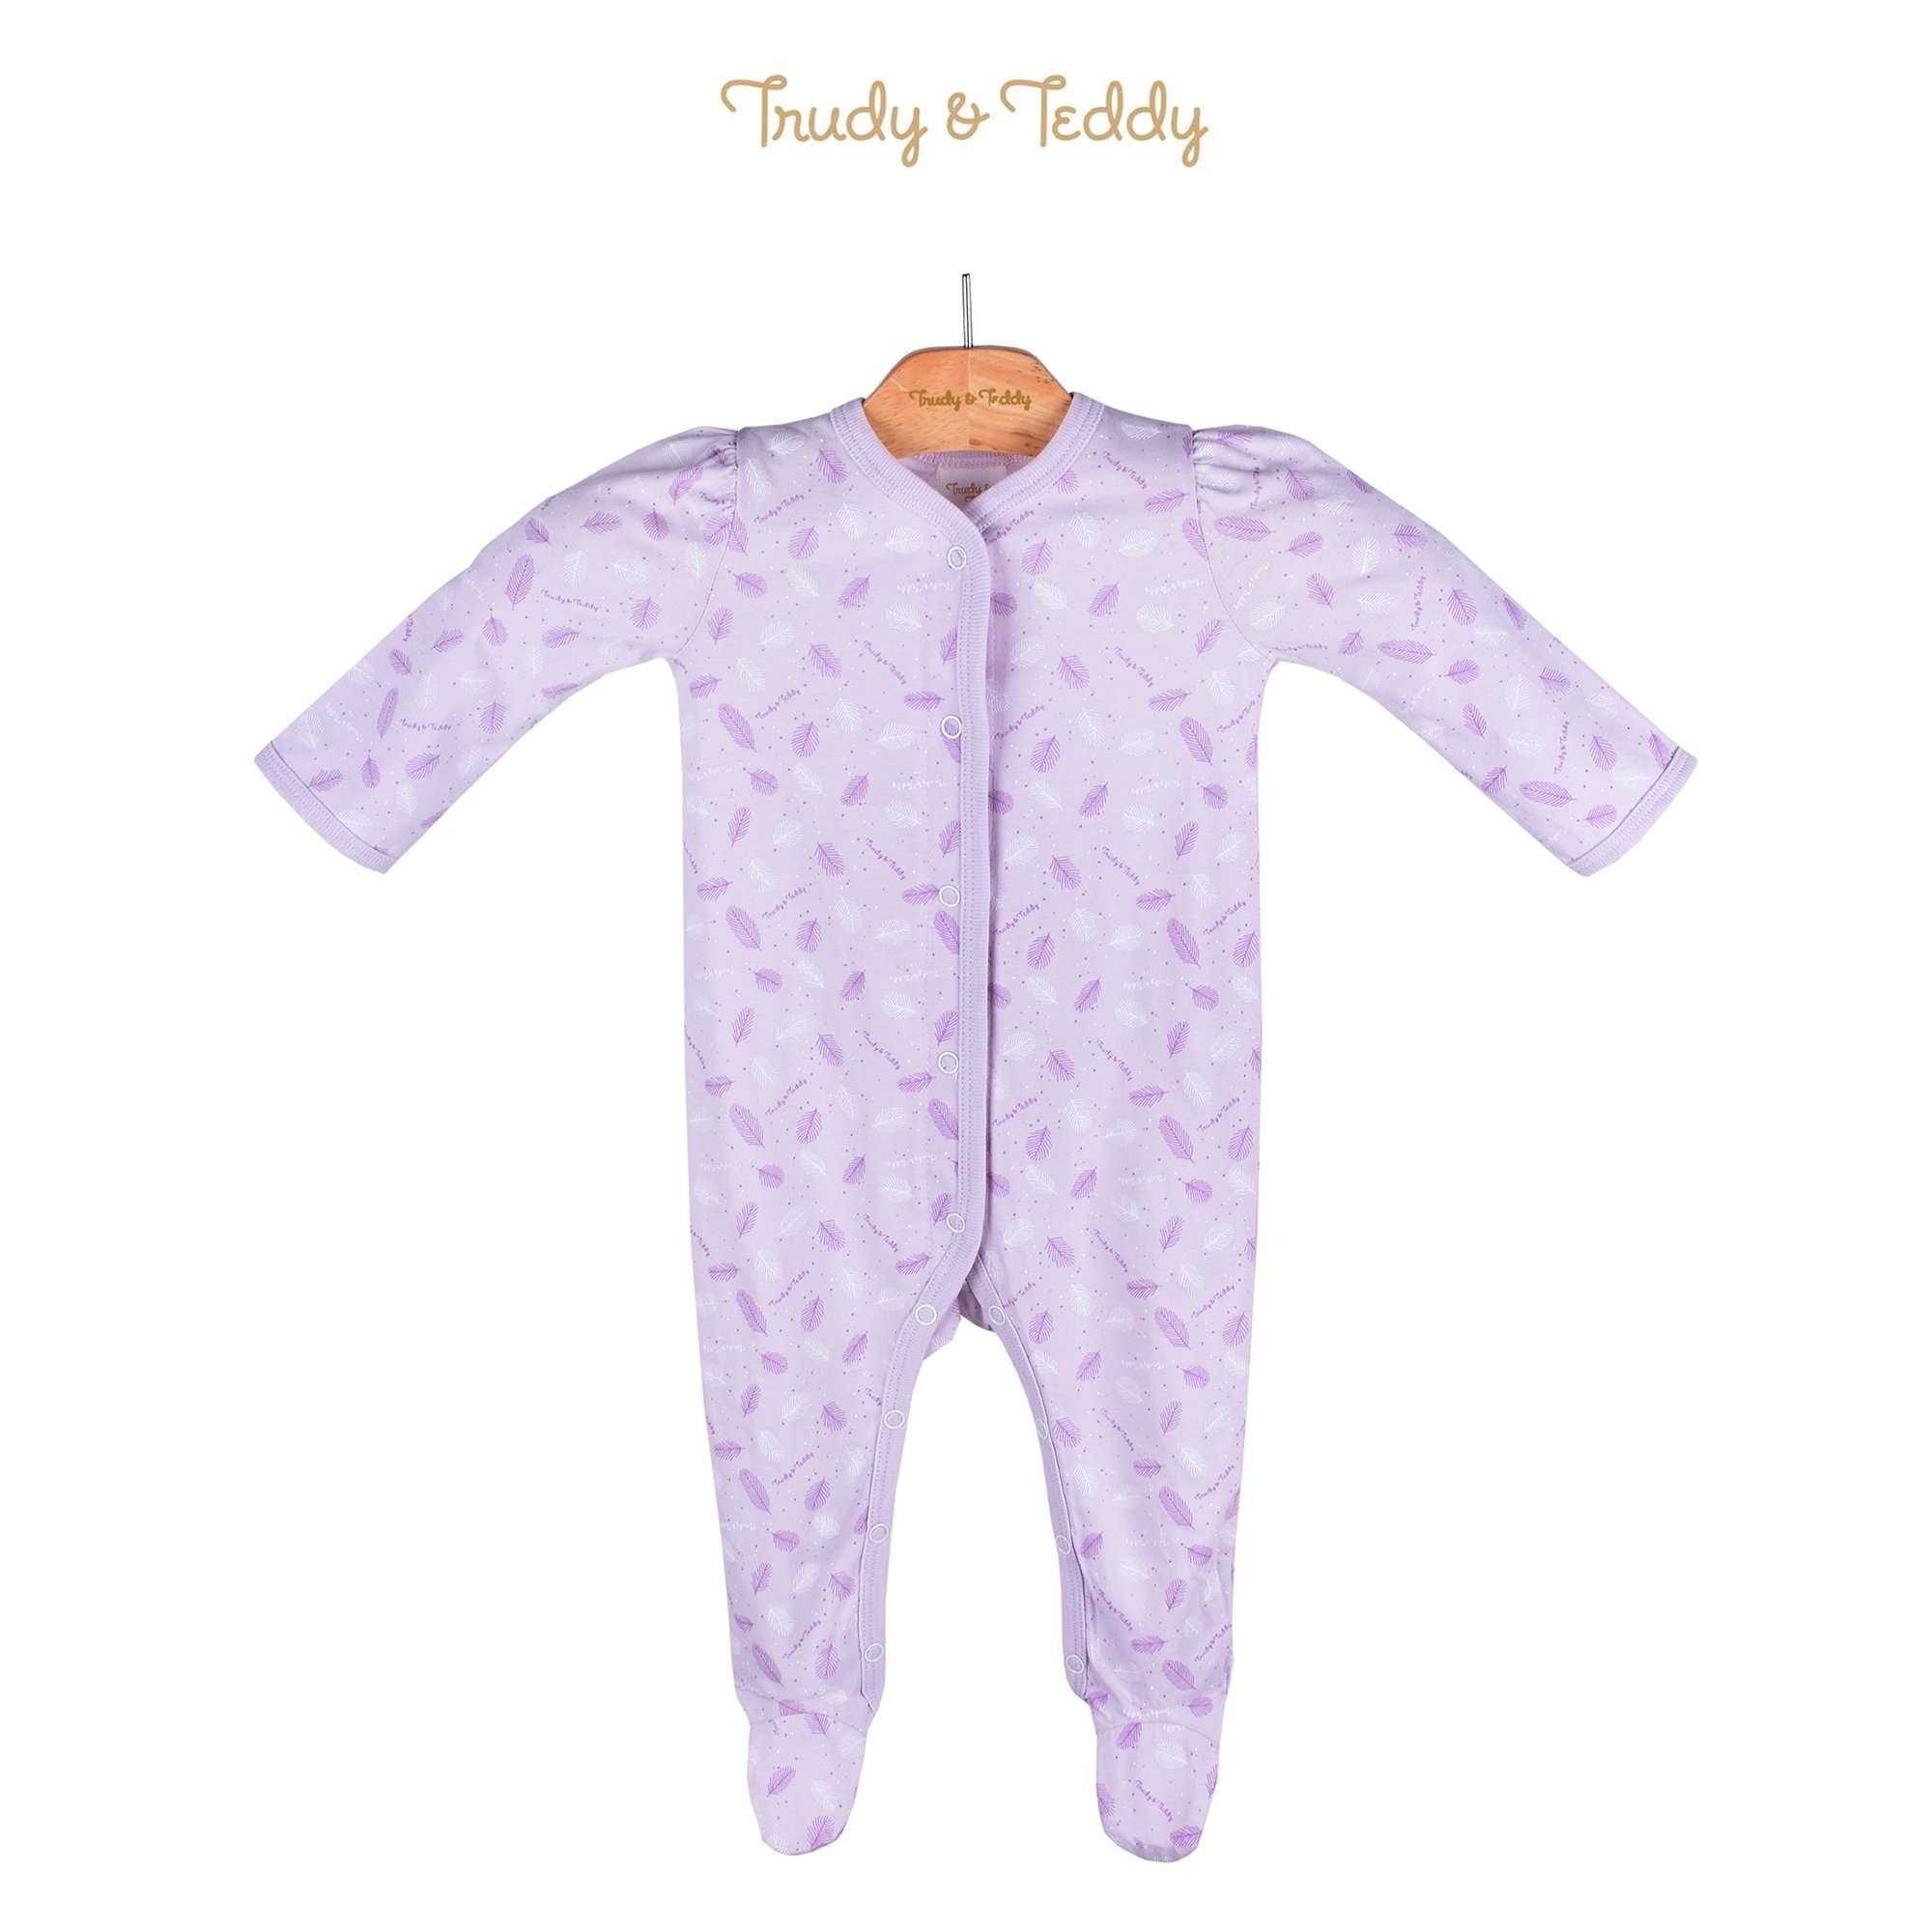 Trudy & Teddy Baby Girl Long Sleeve Long Romper 820031-362 : Buy Trudy & Teddy online at CMG.MY